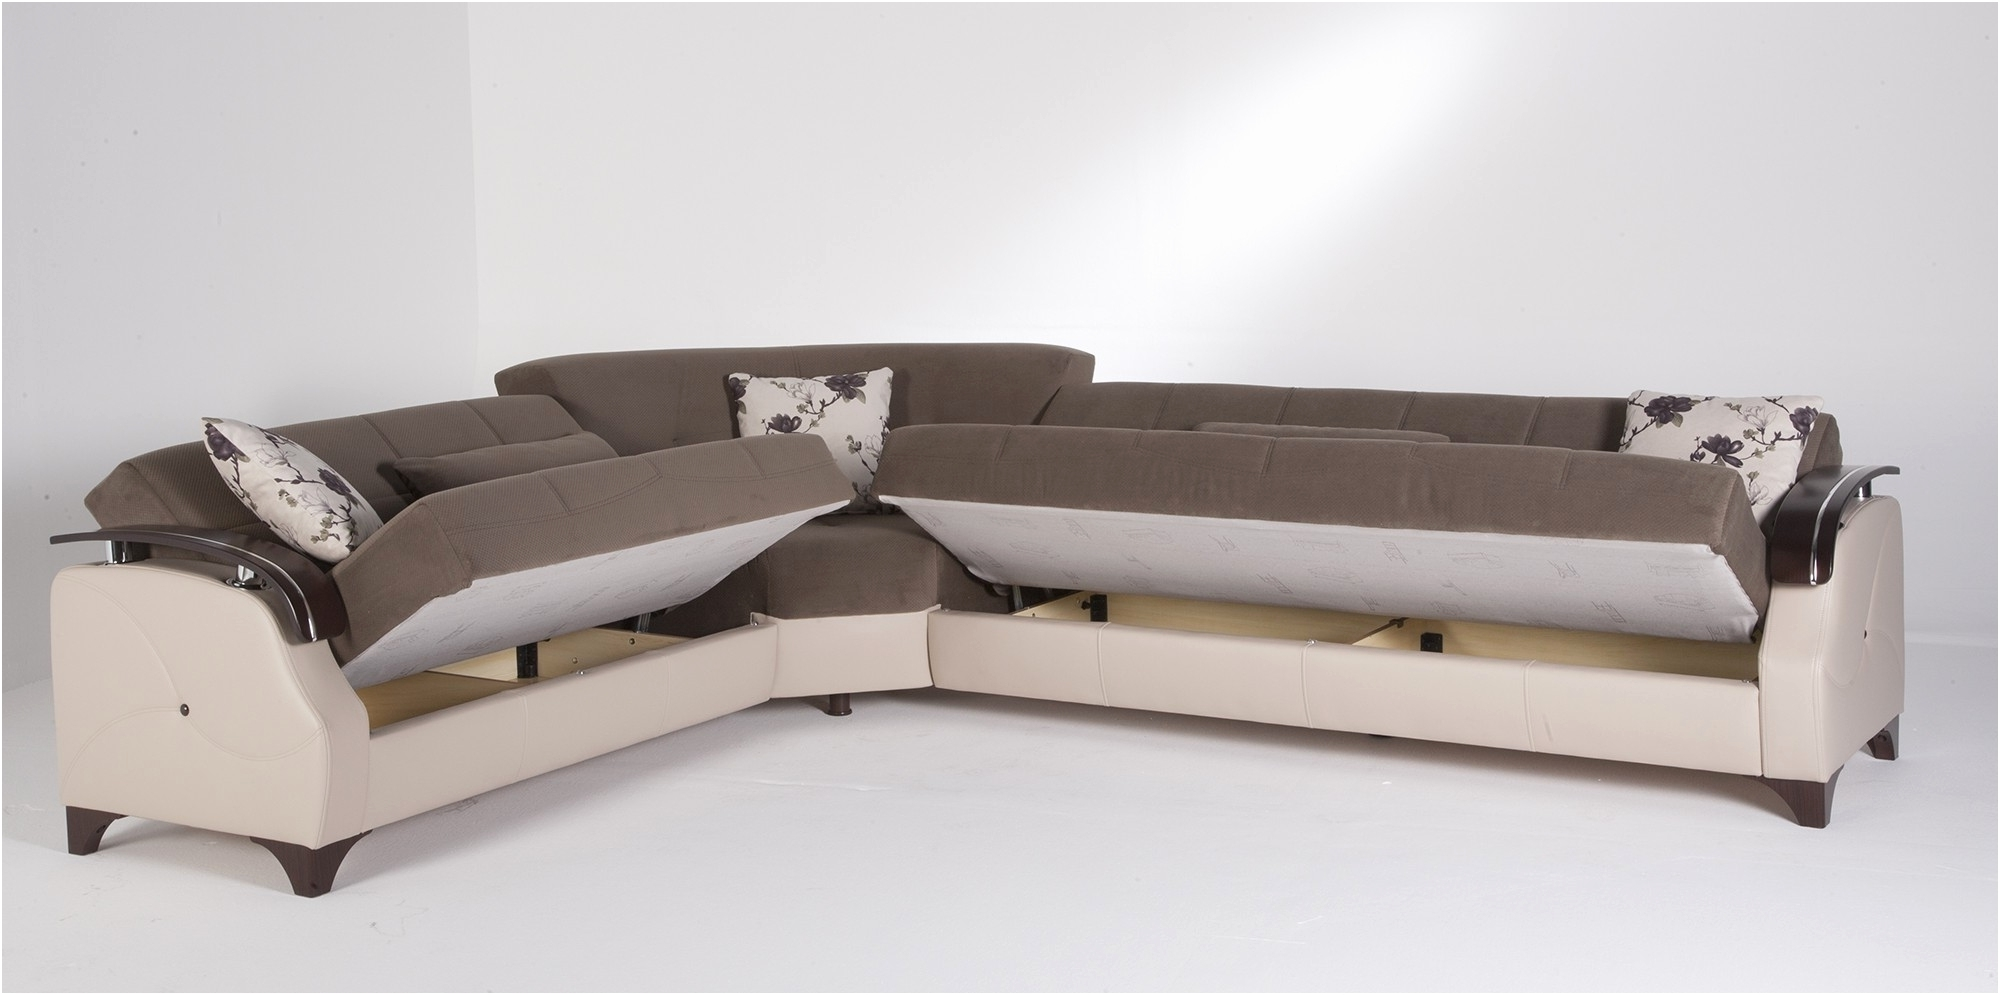 Small Modular Sofas Intended For Recent Living Room : Modular Sofas For Small Spaces Space Saving Dining (View 9 of 15)